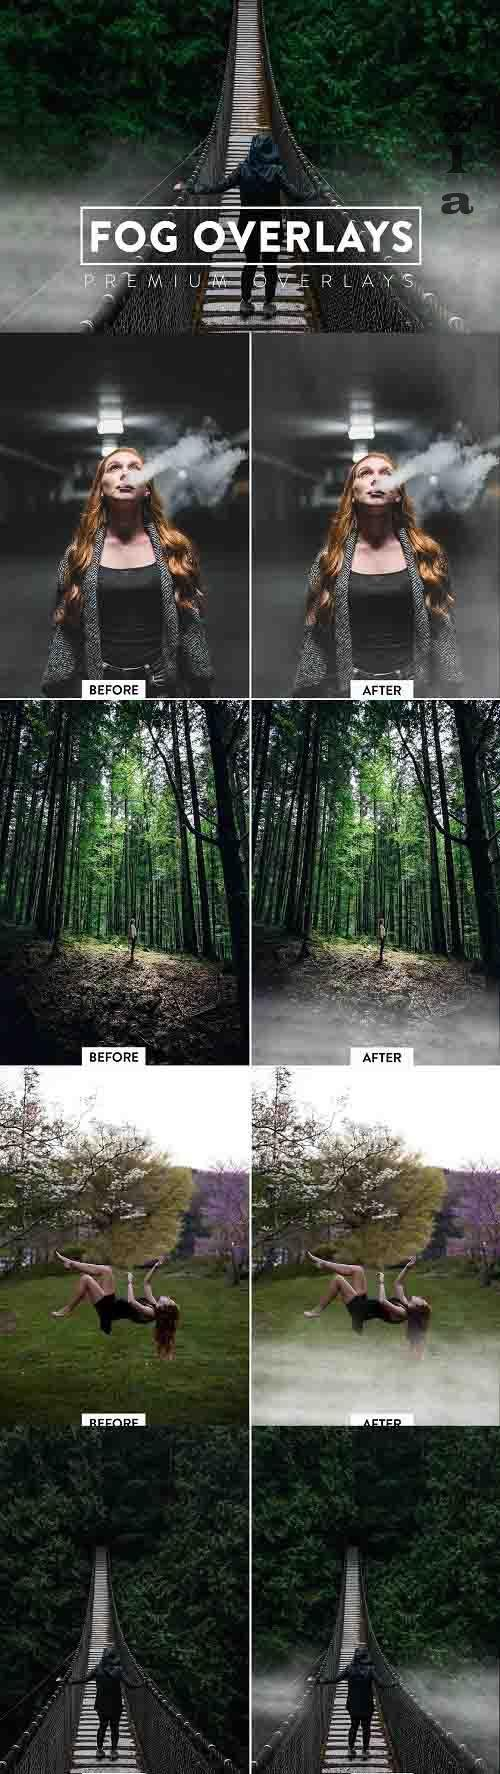 50 Fog Effect Overlays - 5929997